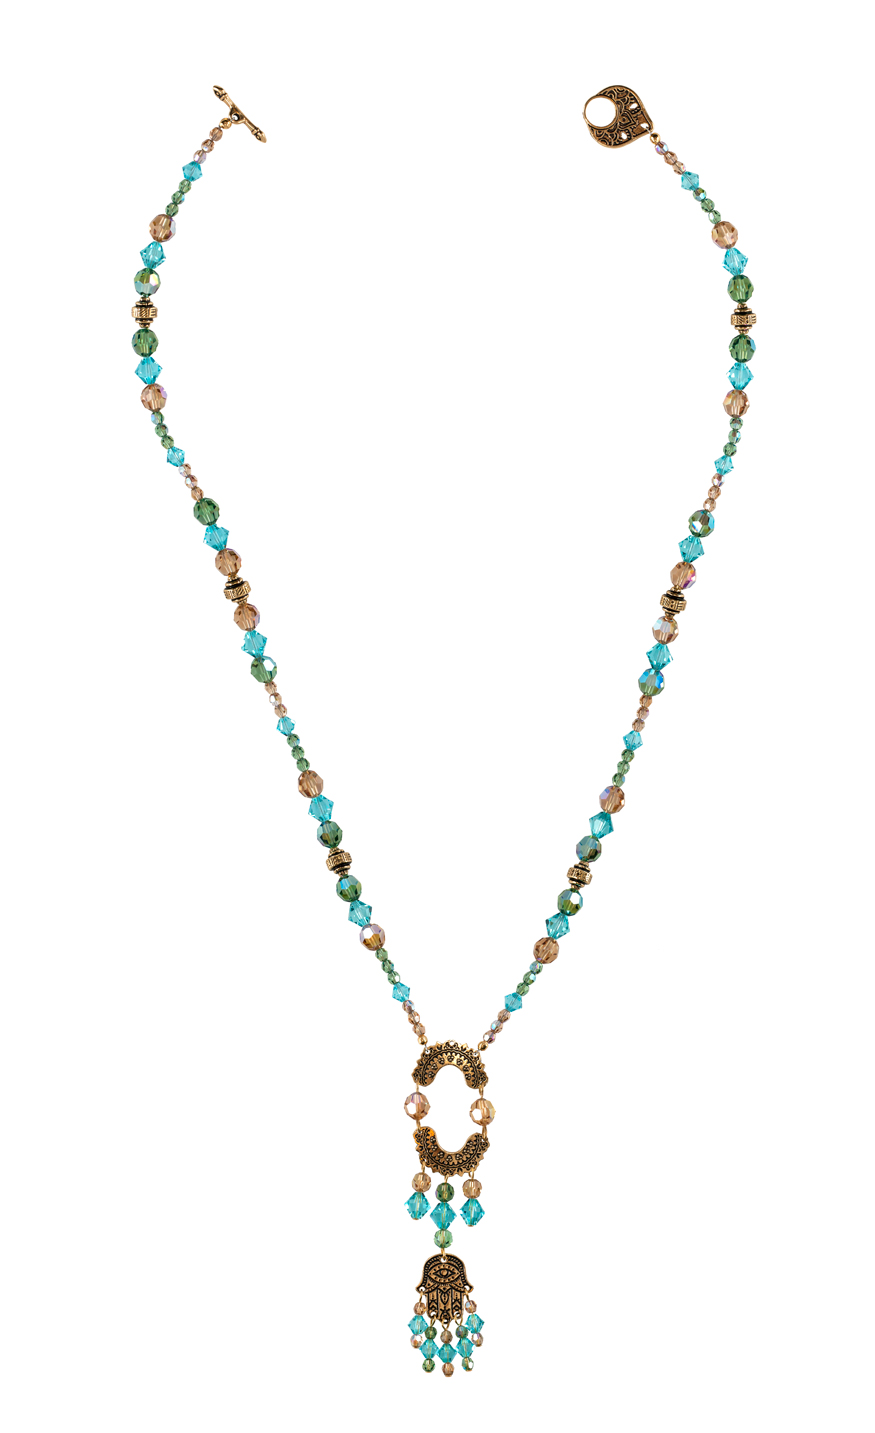 Marrakesh Miracle Necklace